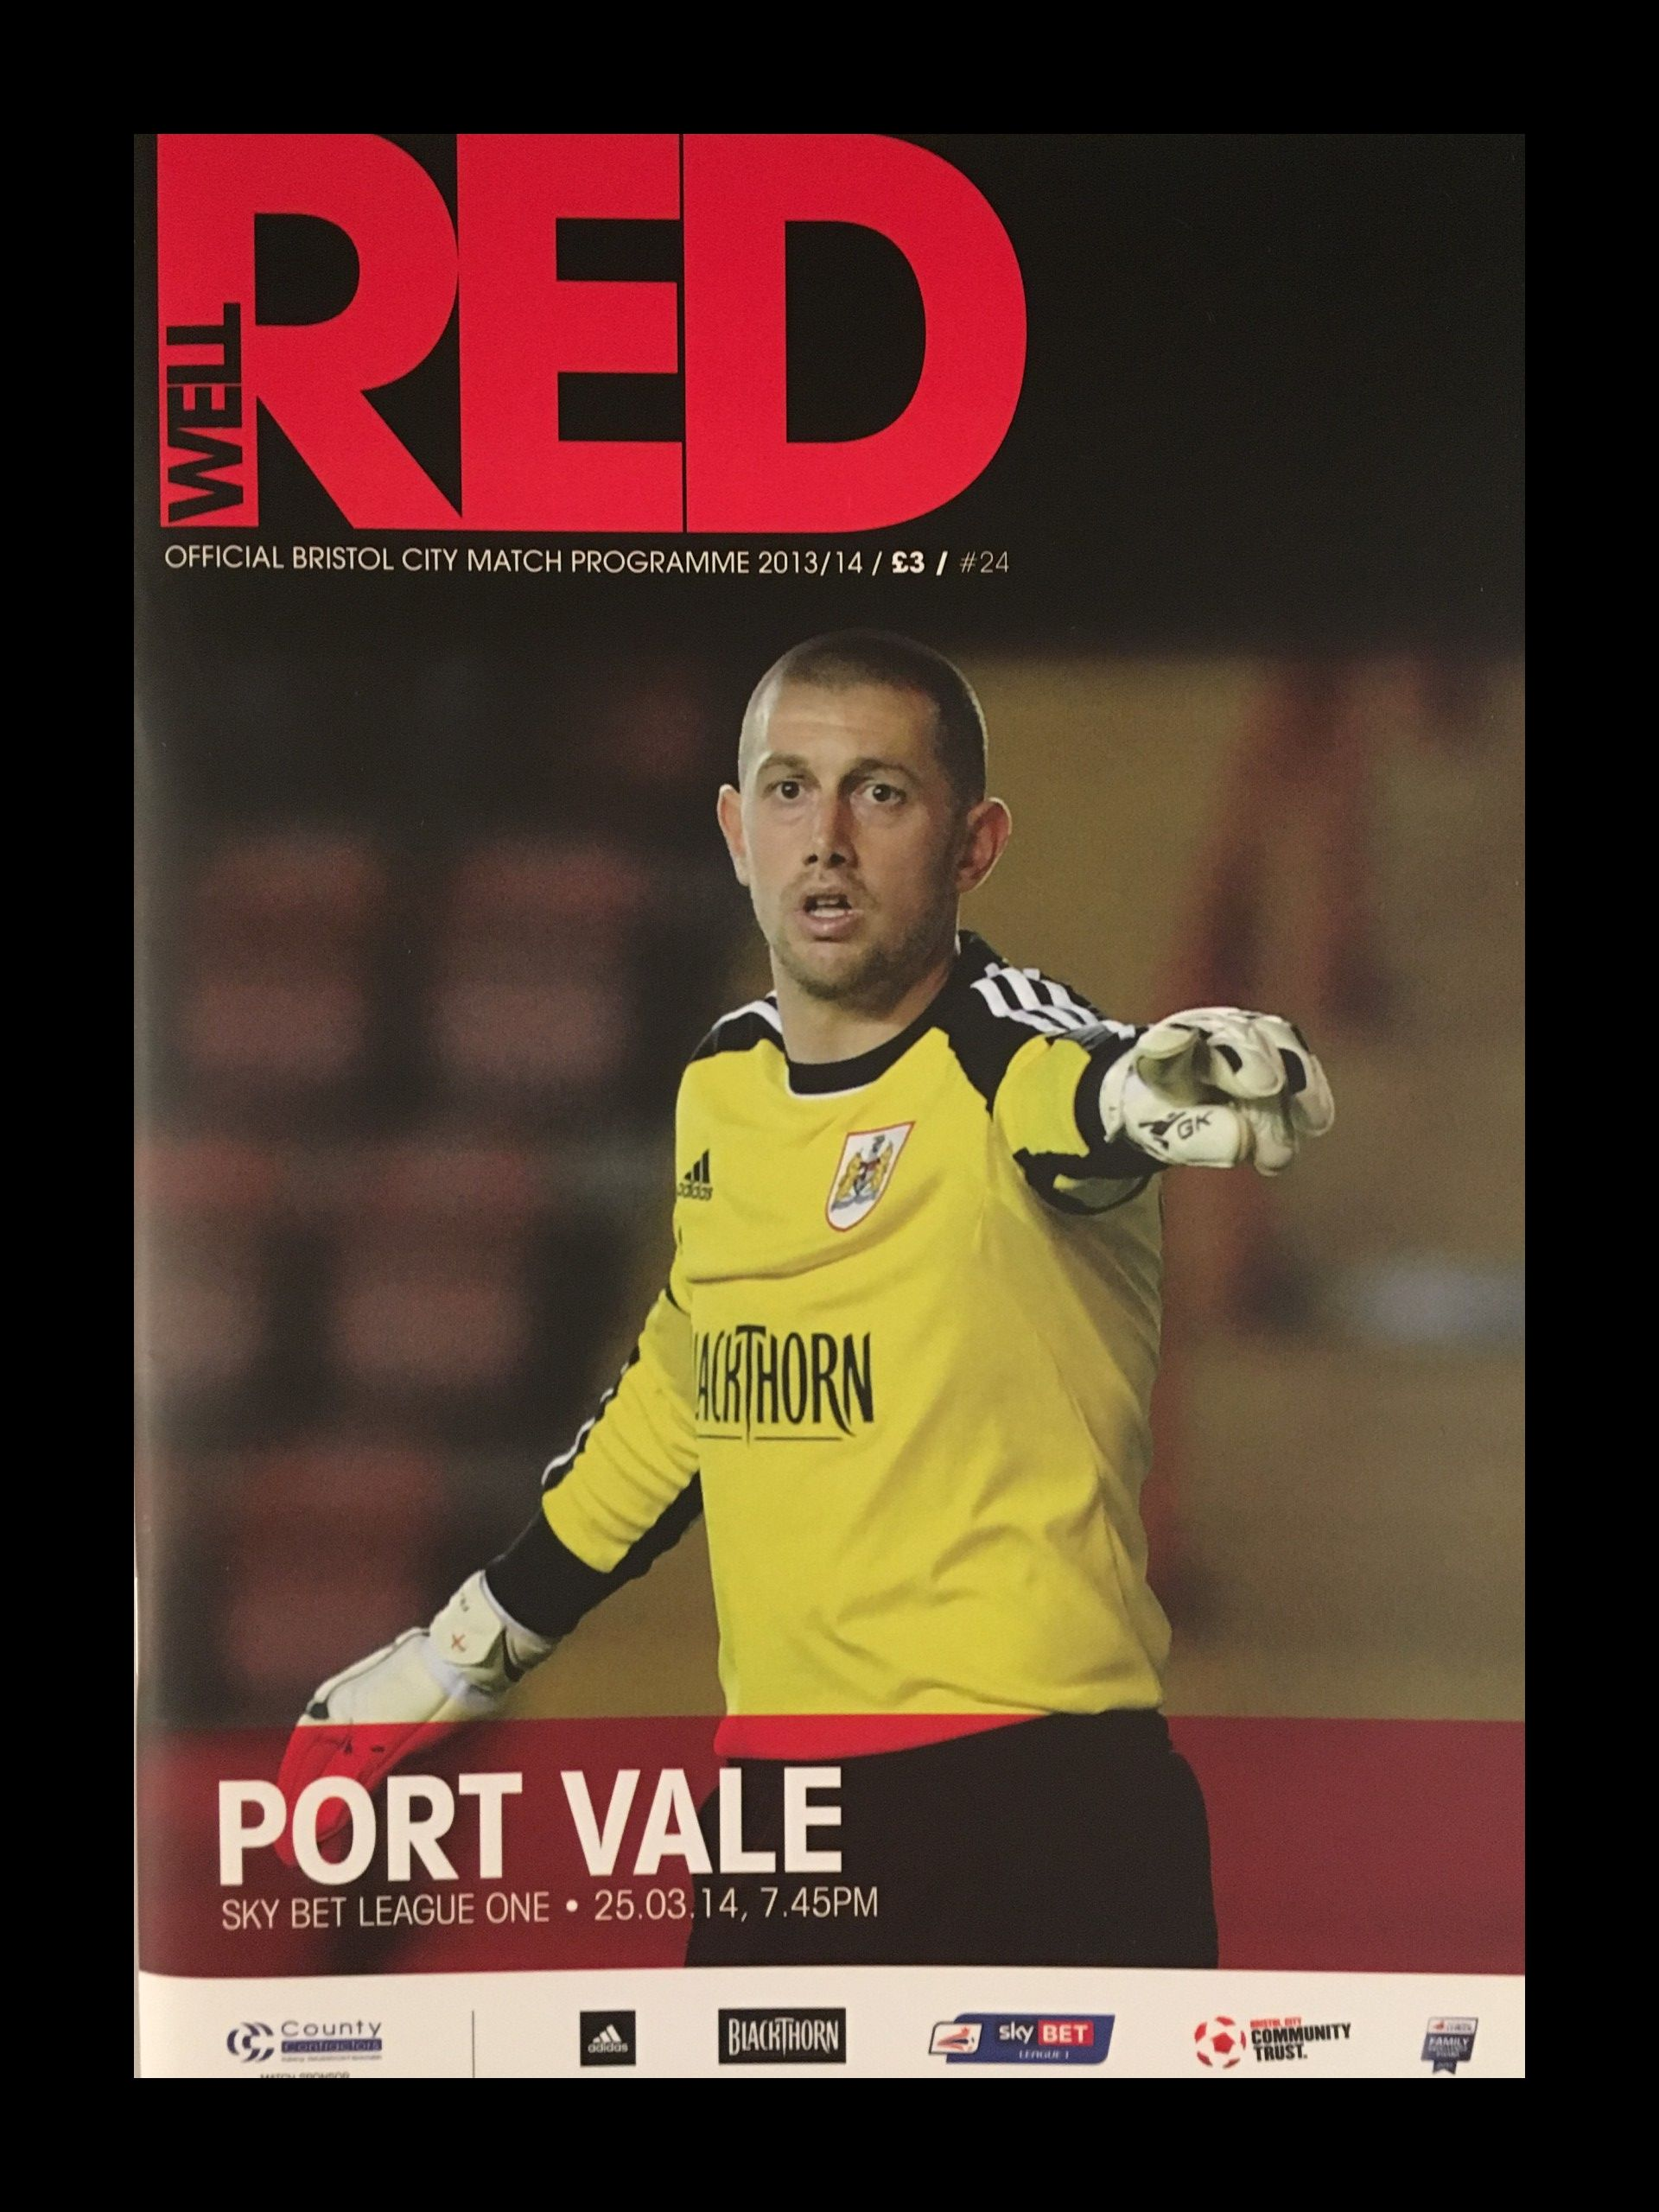 Bristol City v Port Vale 25-03-2014 Programme